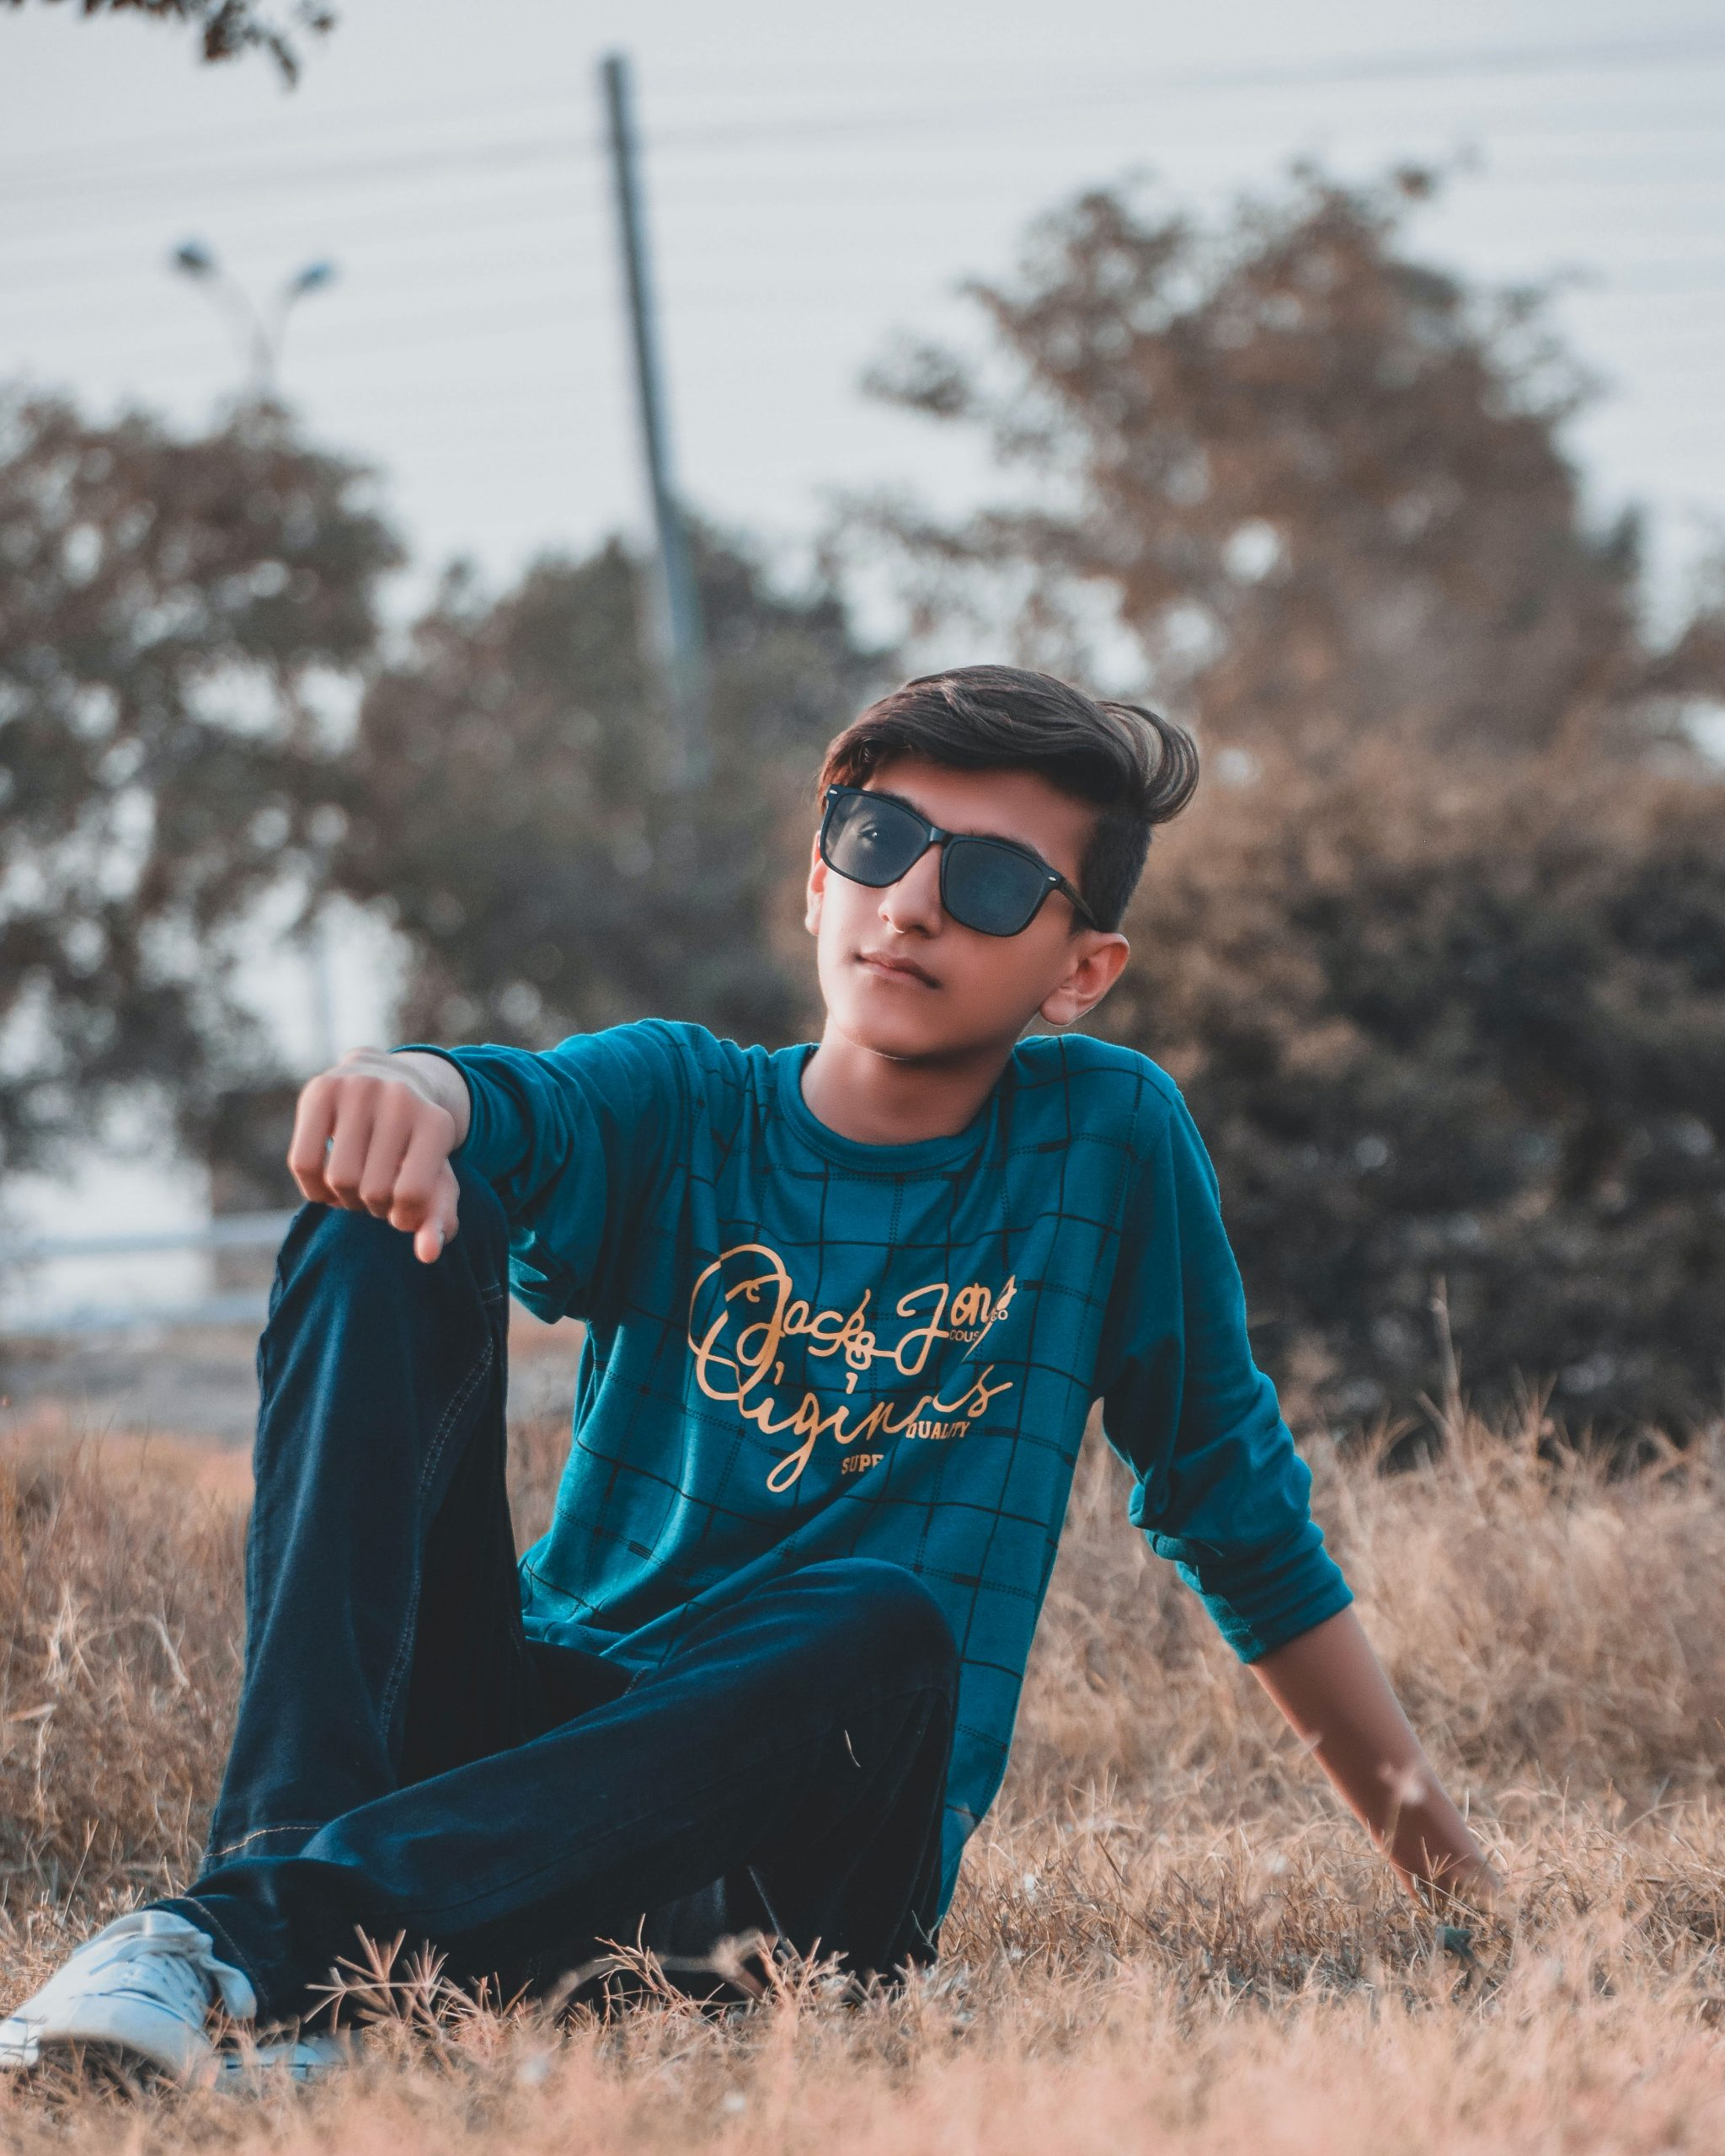 New Attitude Dp For Boy Images photo hd 2021